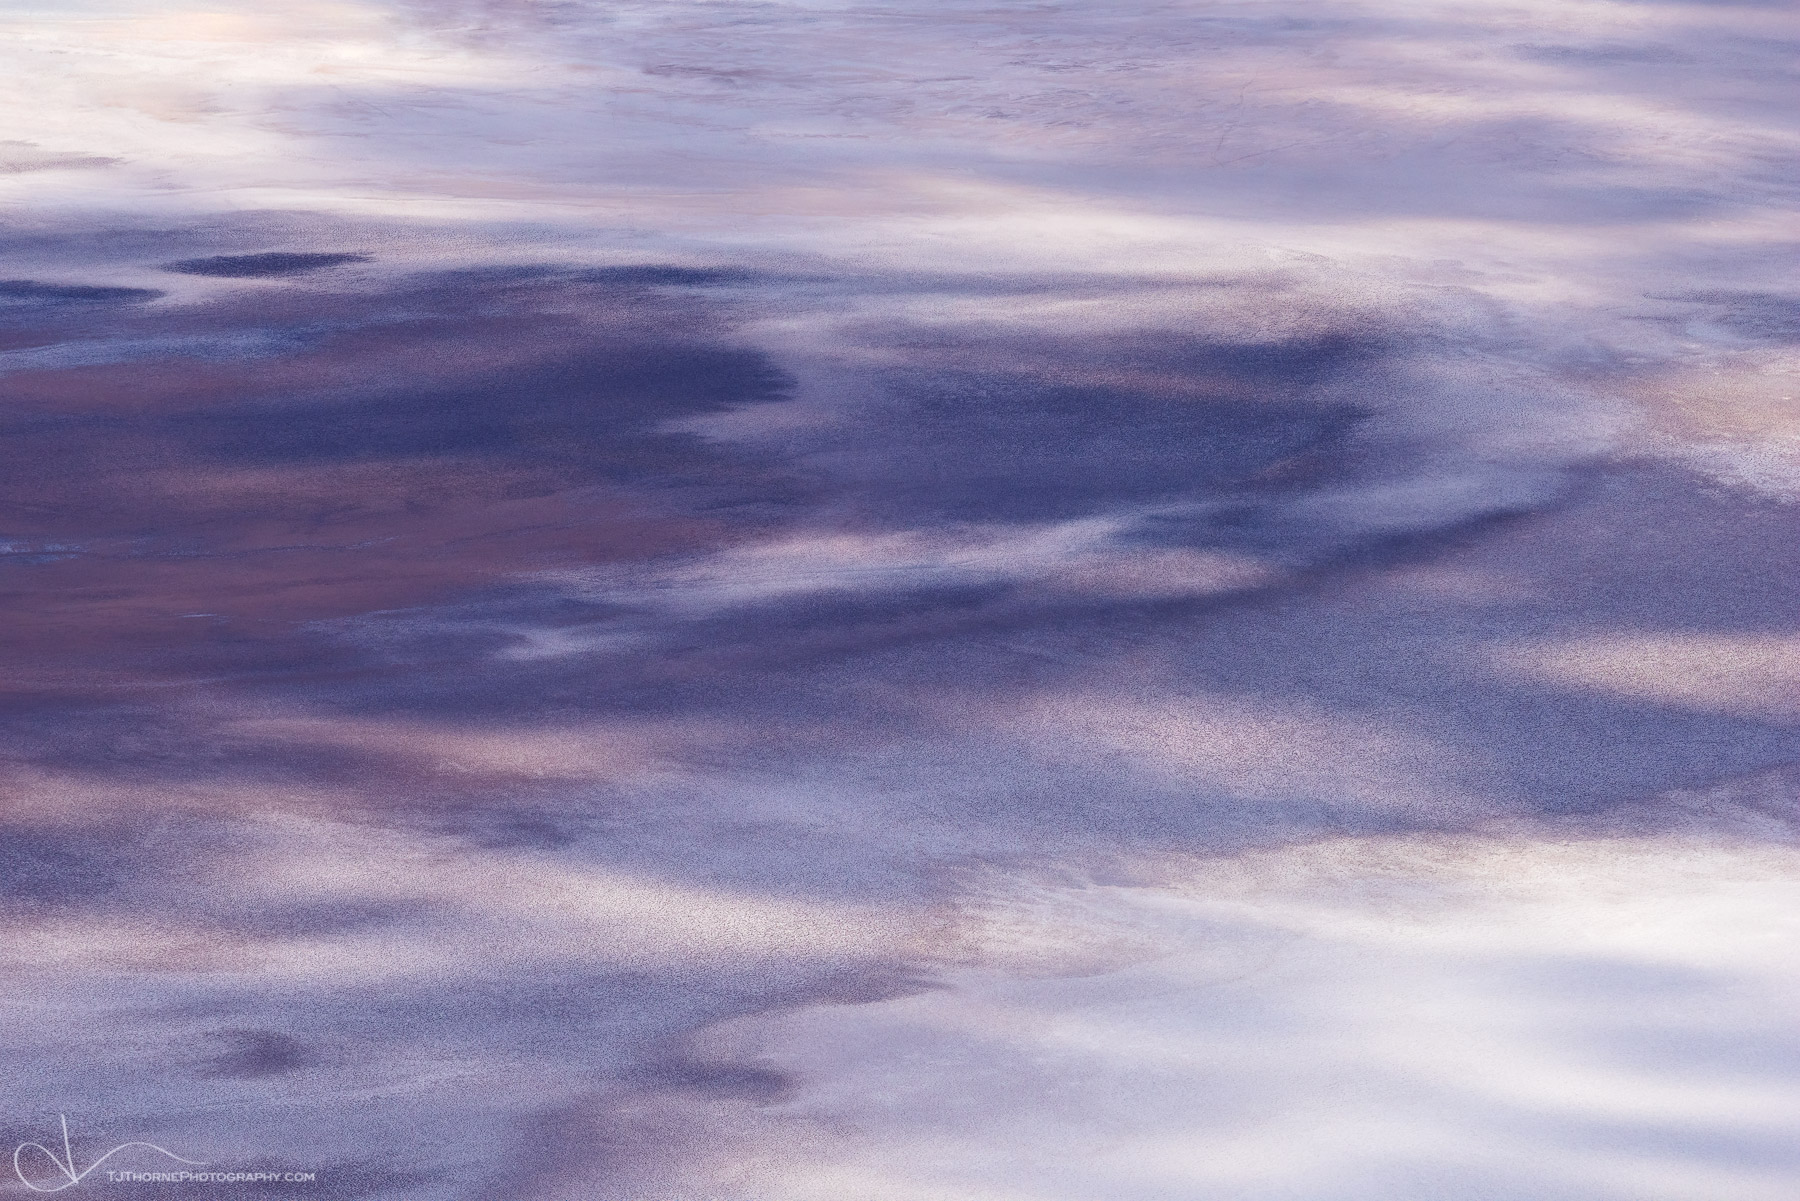 Dappled light moves across the abstract saline patterns of Badwater Basin in Death Valley National Park, California.